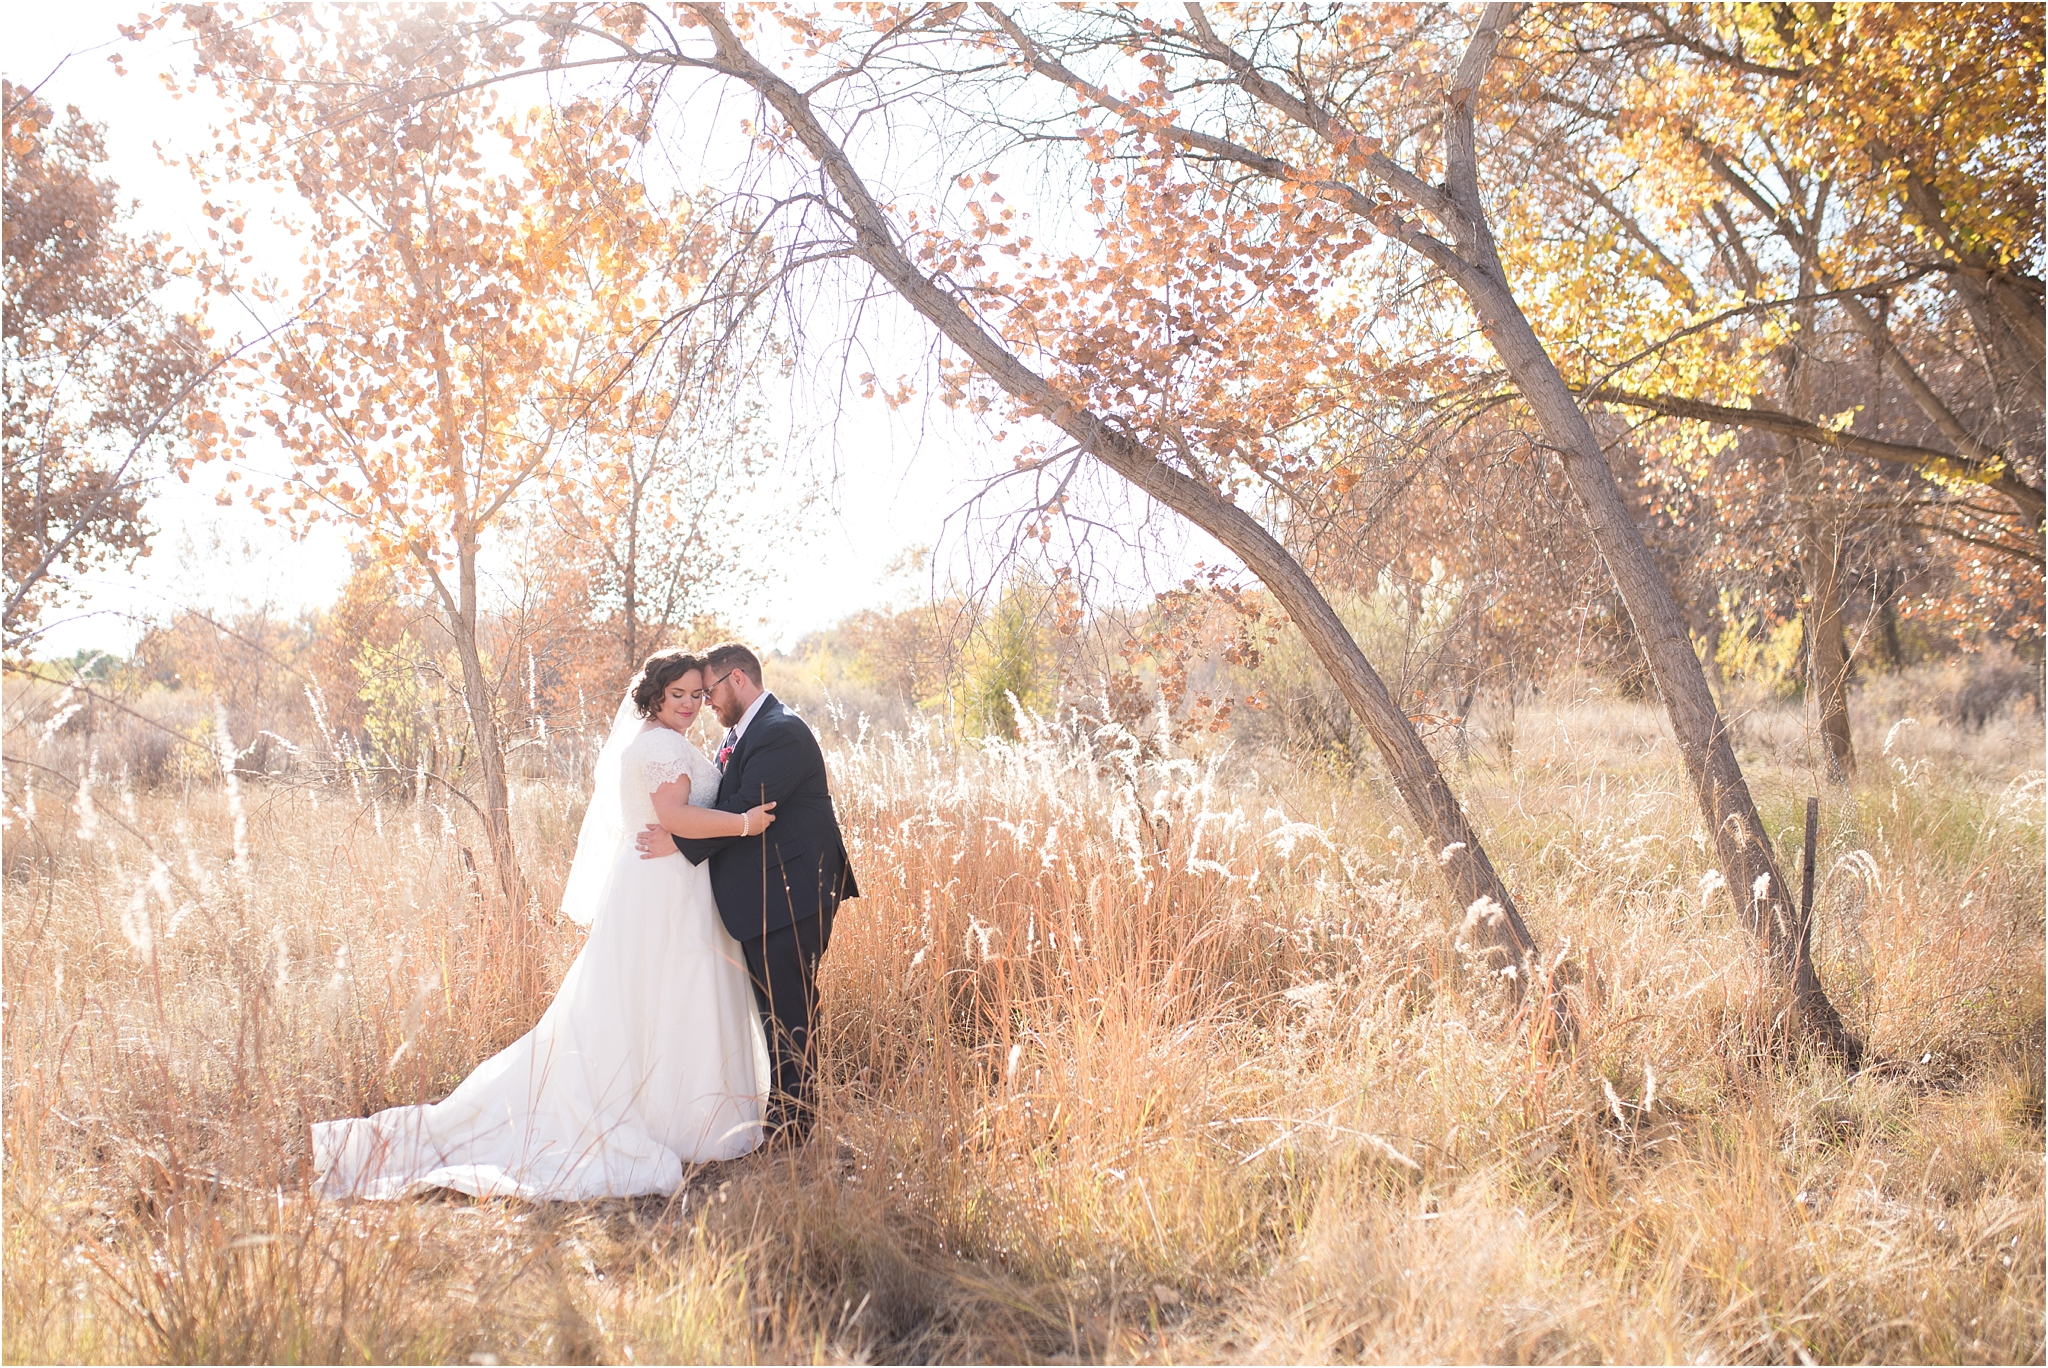 kayla kitts photography - albuquerque wedding photographer - new mexico wedding photographer - desination wedding photographer - cabo wedding photographer_0001.jpg